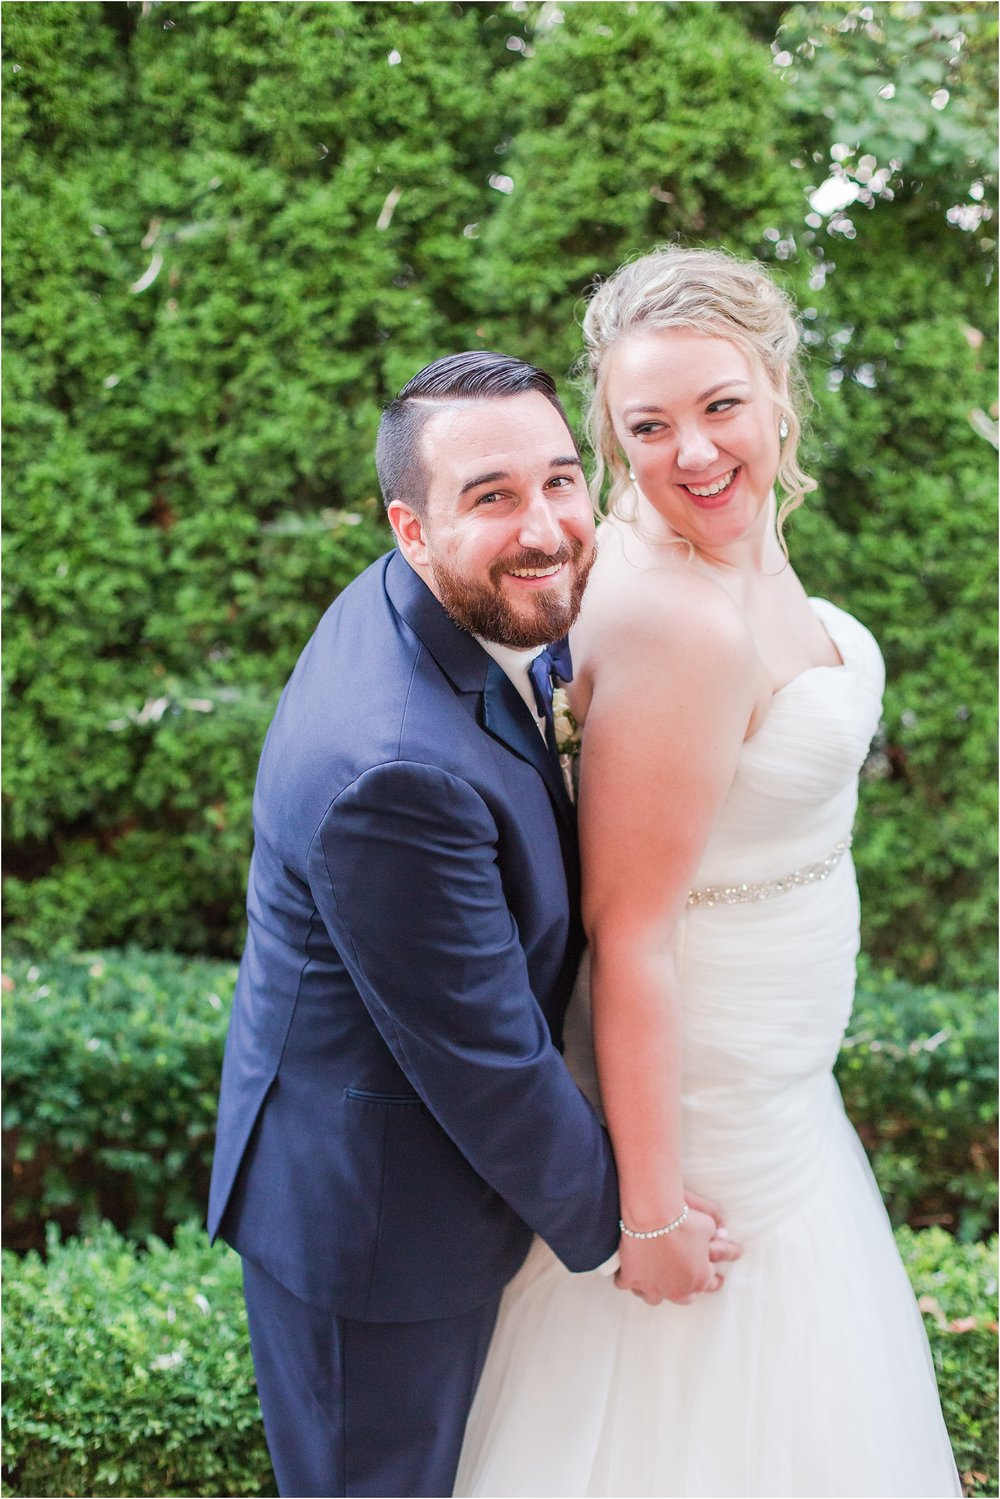 joyful-and-candid-navy-blush-wedding-photos-at-crystal-gardens-in-howell-mi-by-courtney-carolyn-photography_0105.jpg